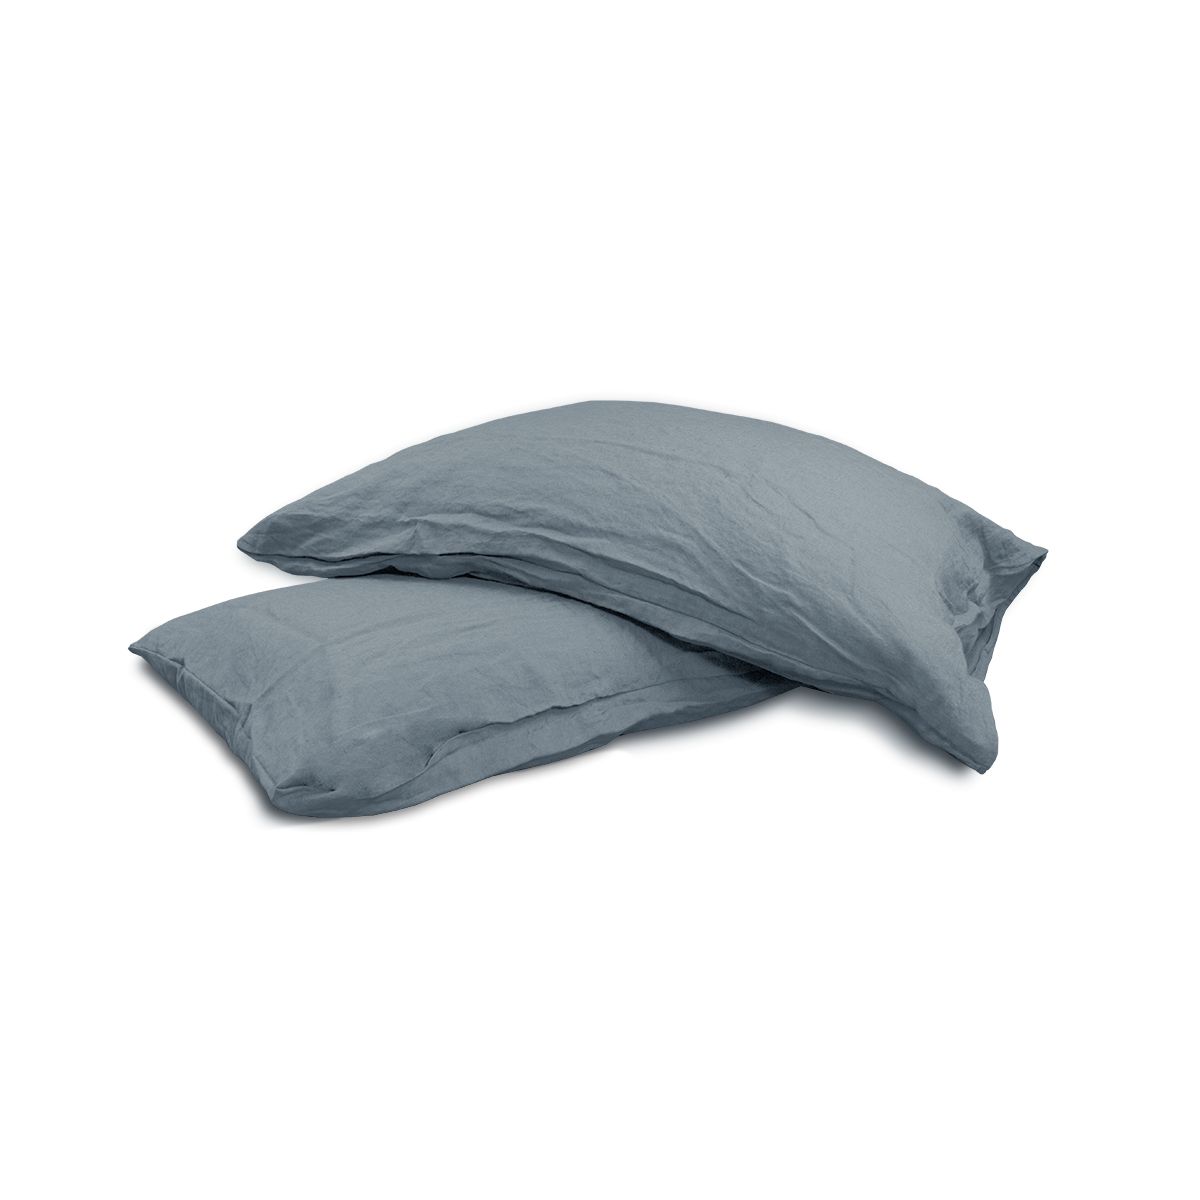 HEY EXCLUSIVE - Pillowcases